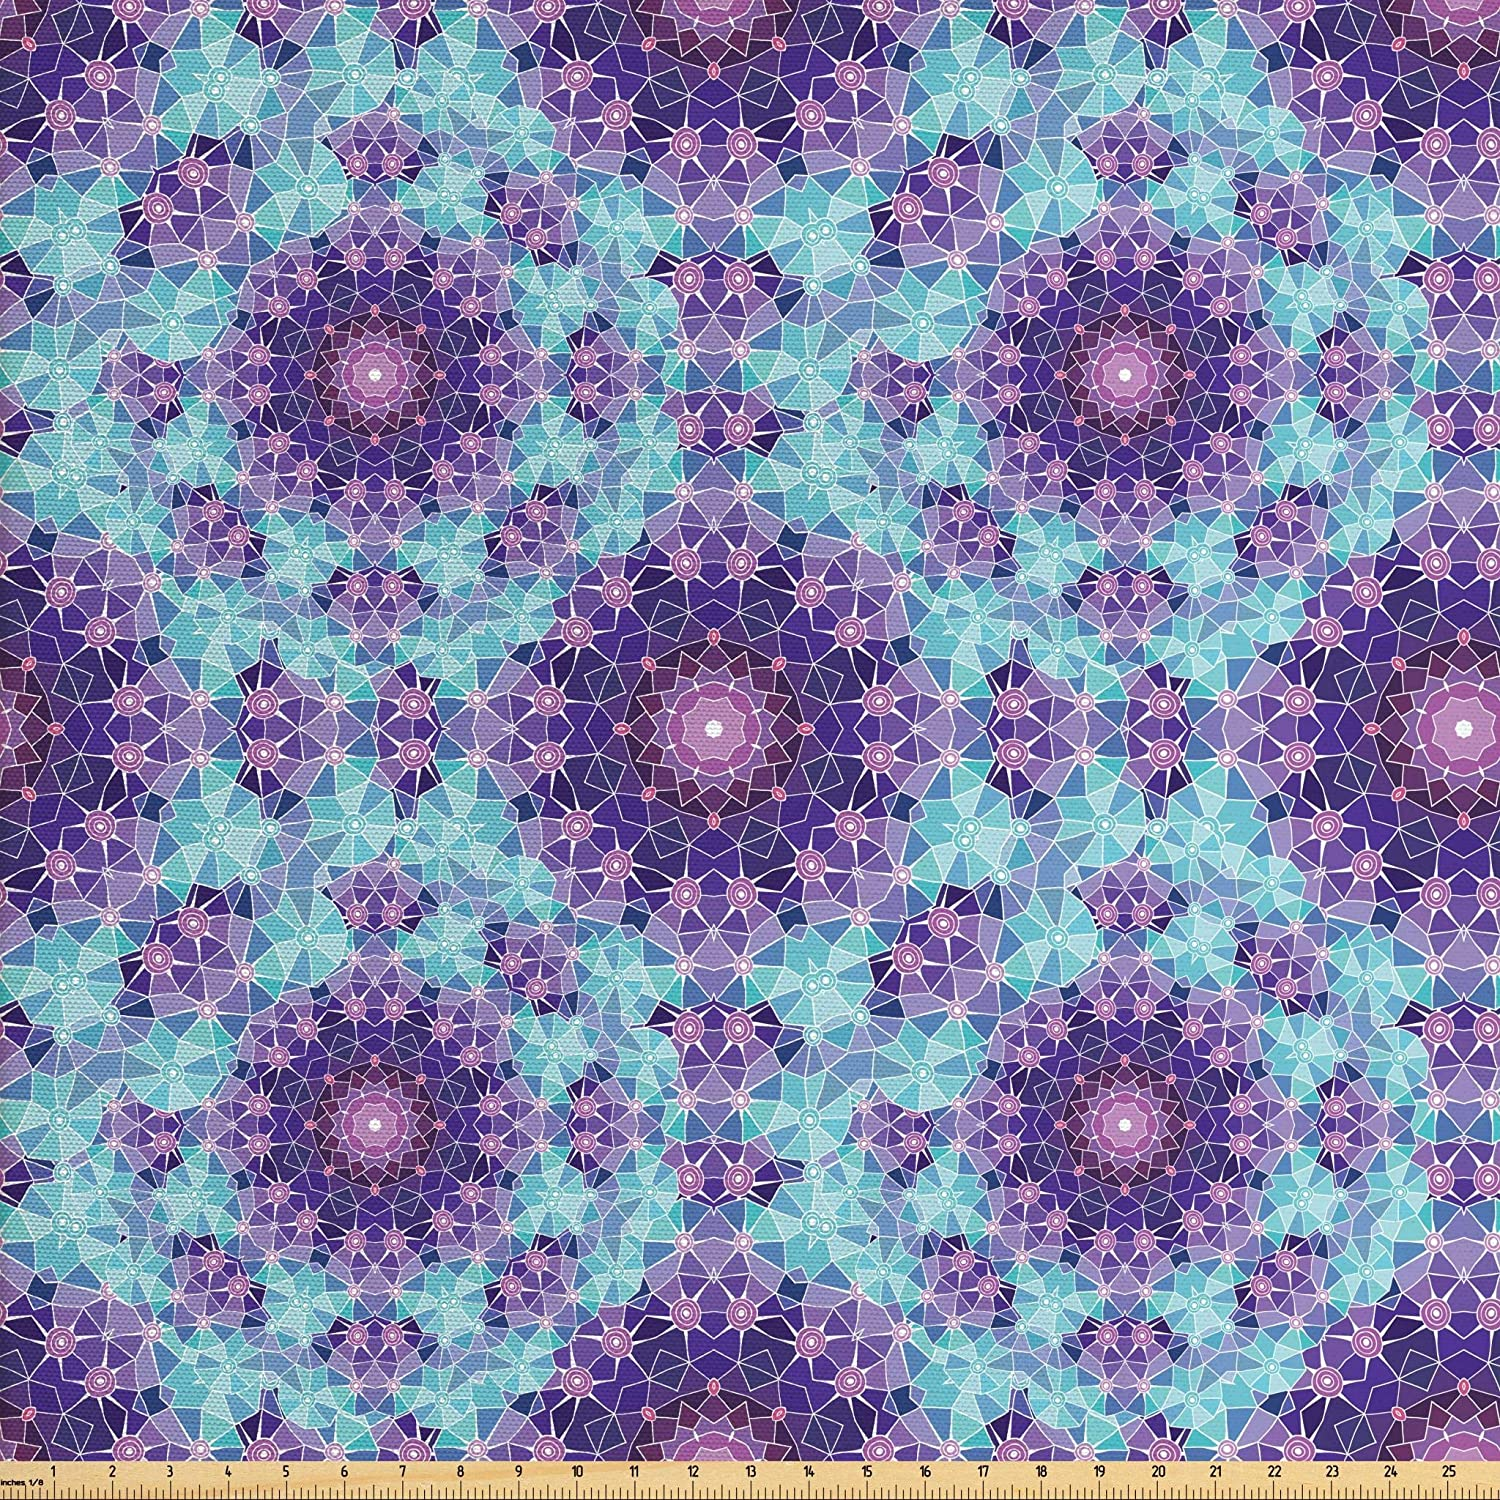 Ambesonne Purple Mandala Fabric by The Yard, Geometric Mosaic Fractal Sign of Universe Graphic Art, Decorative Fabric for Upholstery and Home Accents, 3 Yards, Mauve Lilac